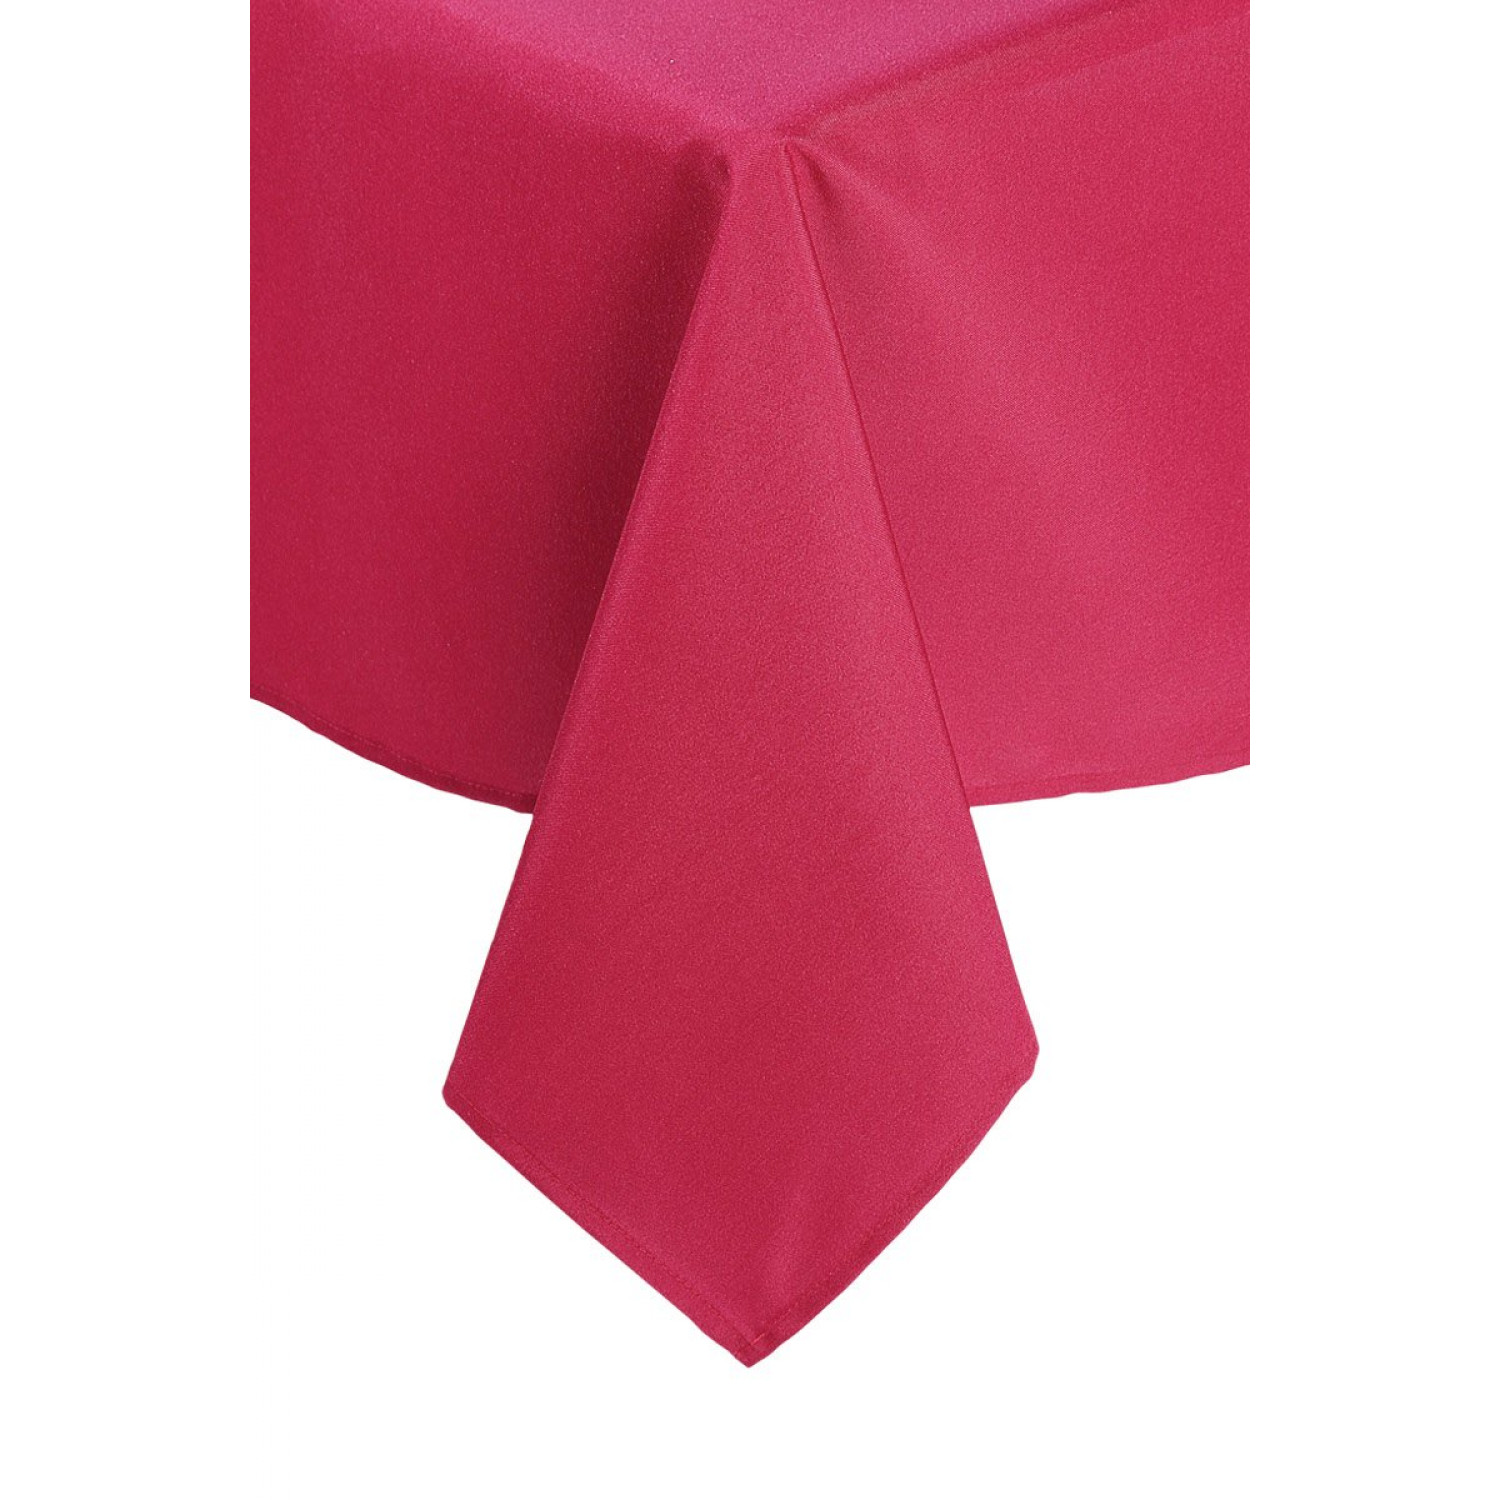 Nappe rectangulaire - Anti tâches- 140x240cm - Framboise - Polyester